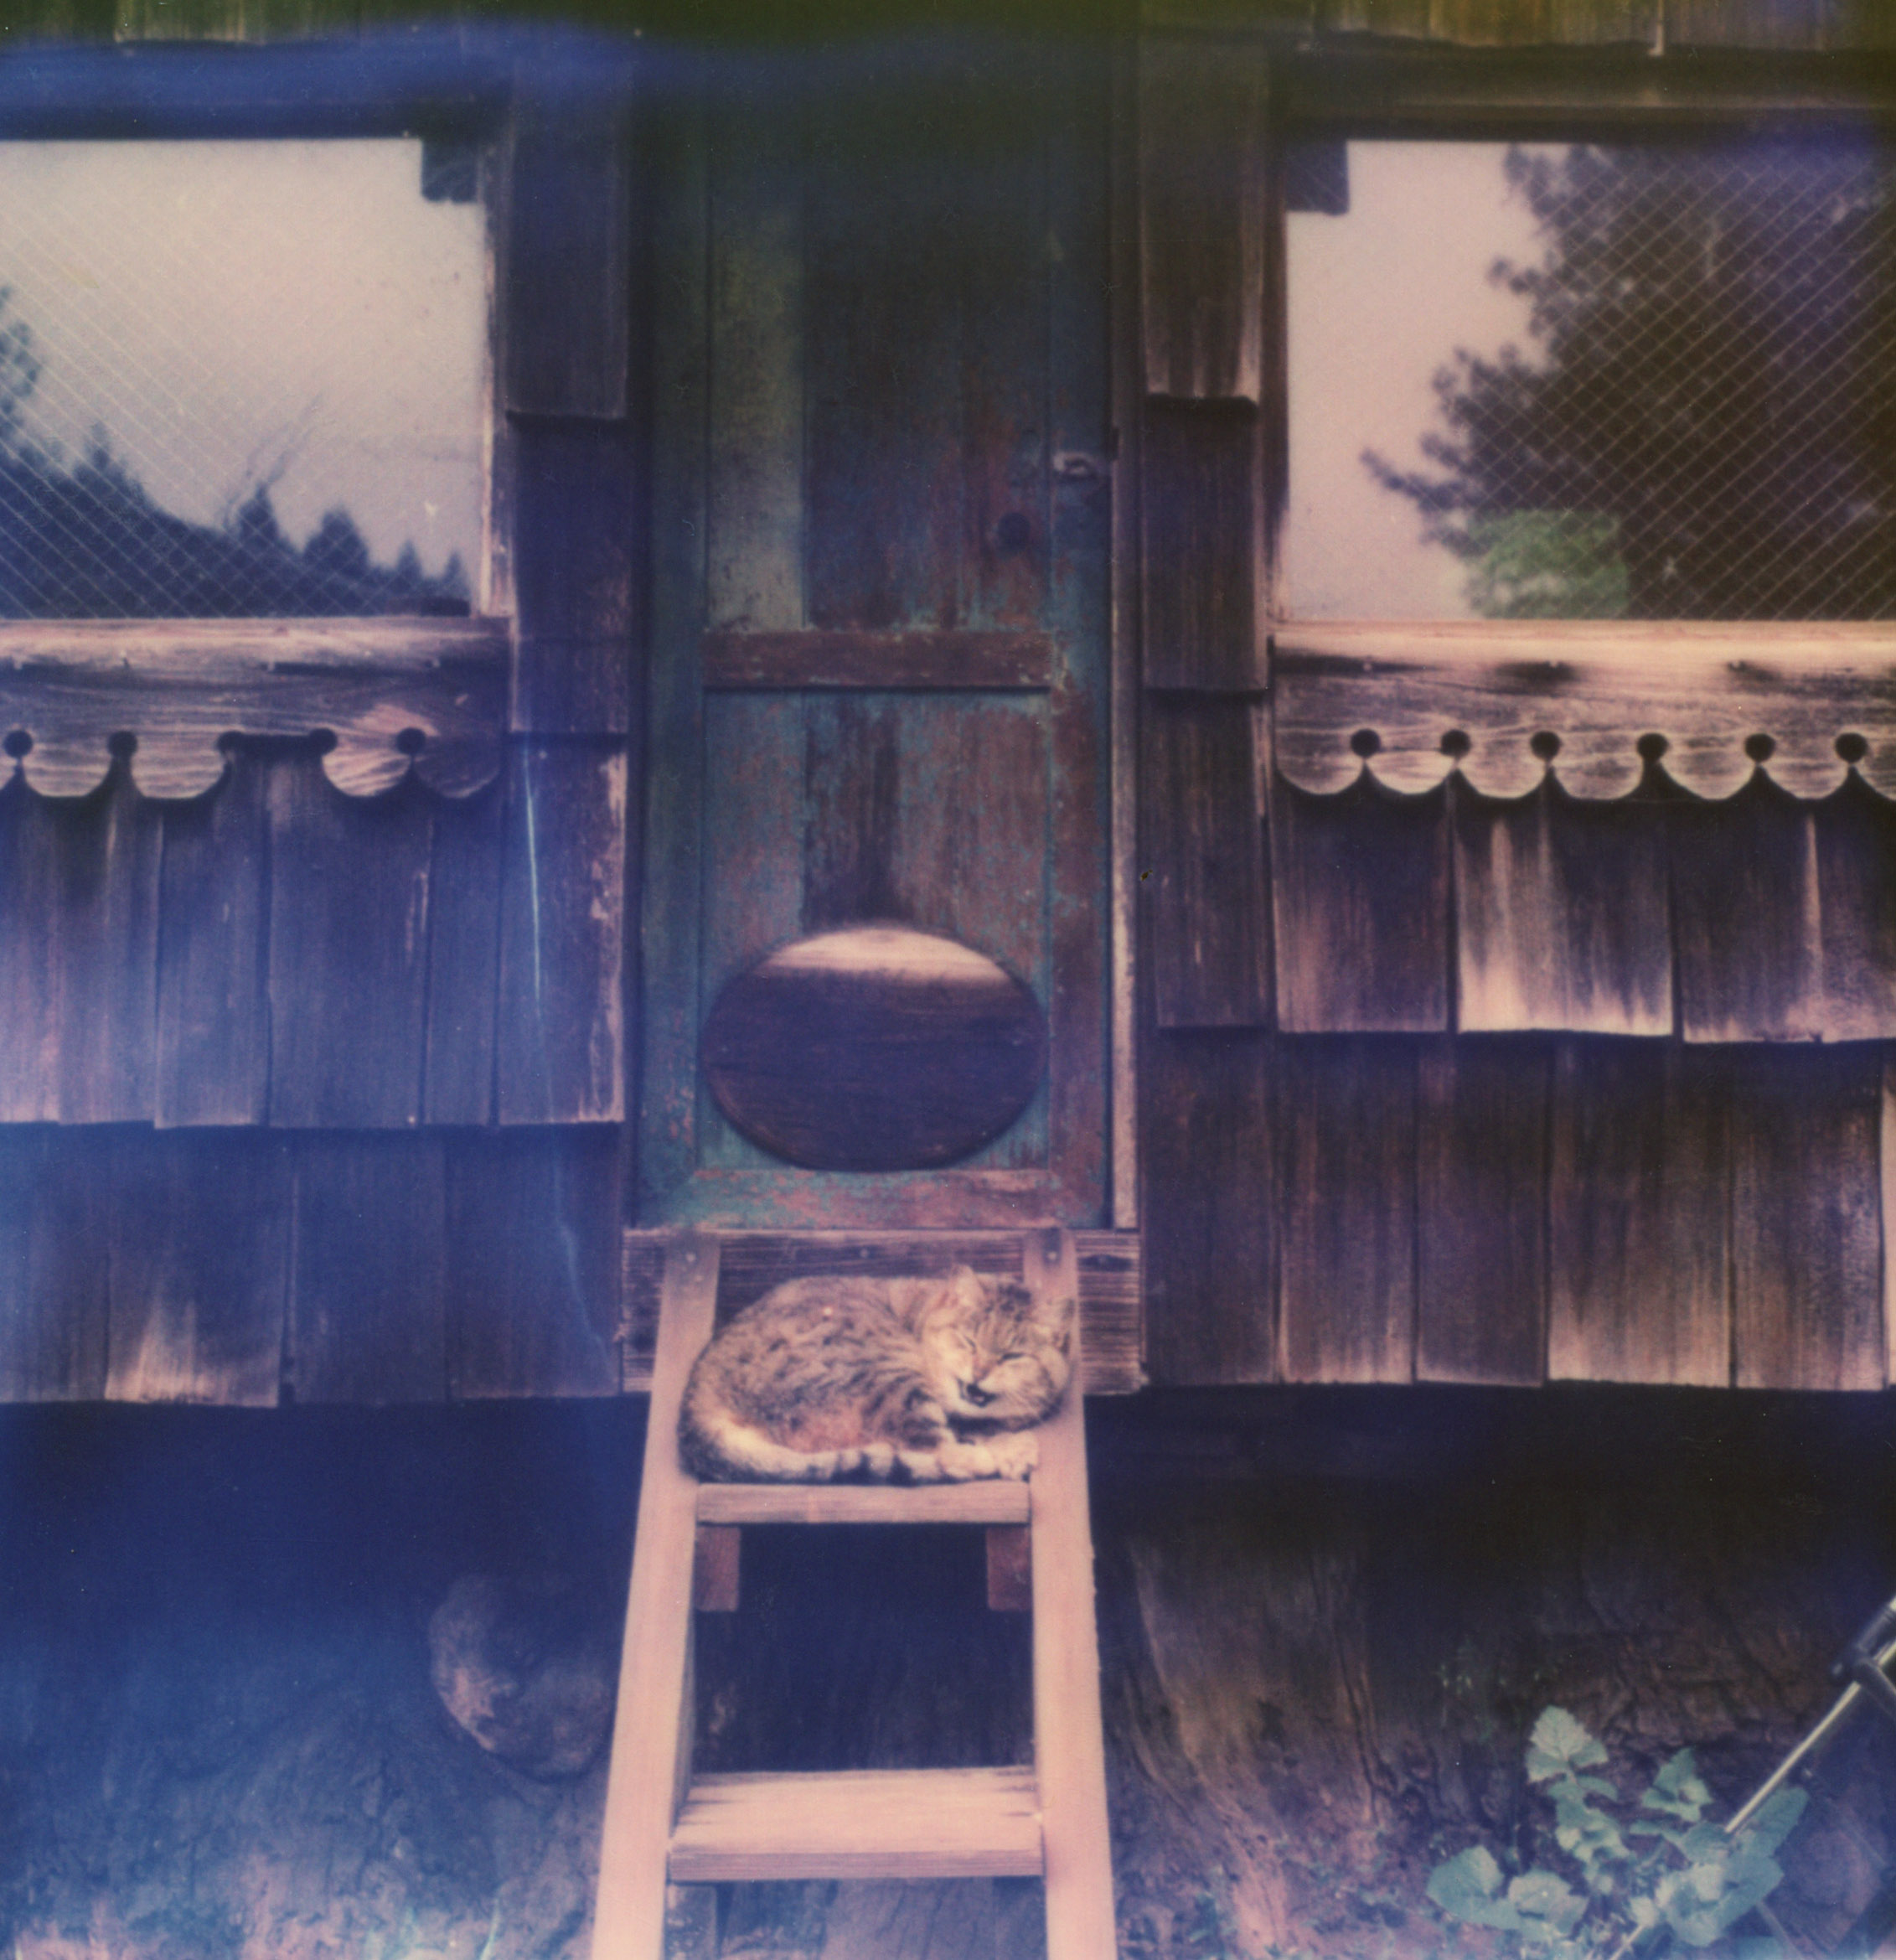 MiNT SLR670m Polaroid Review | Sleeping Cat in Humboldt County